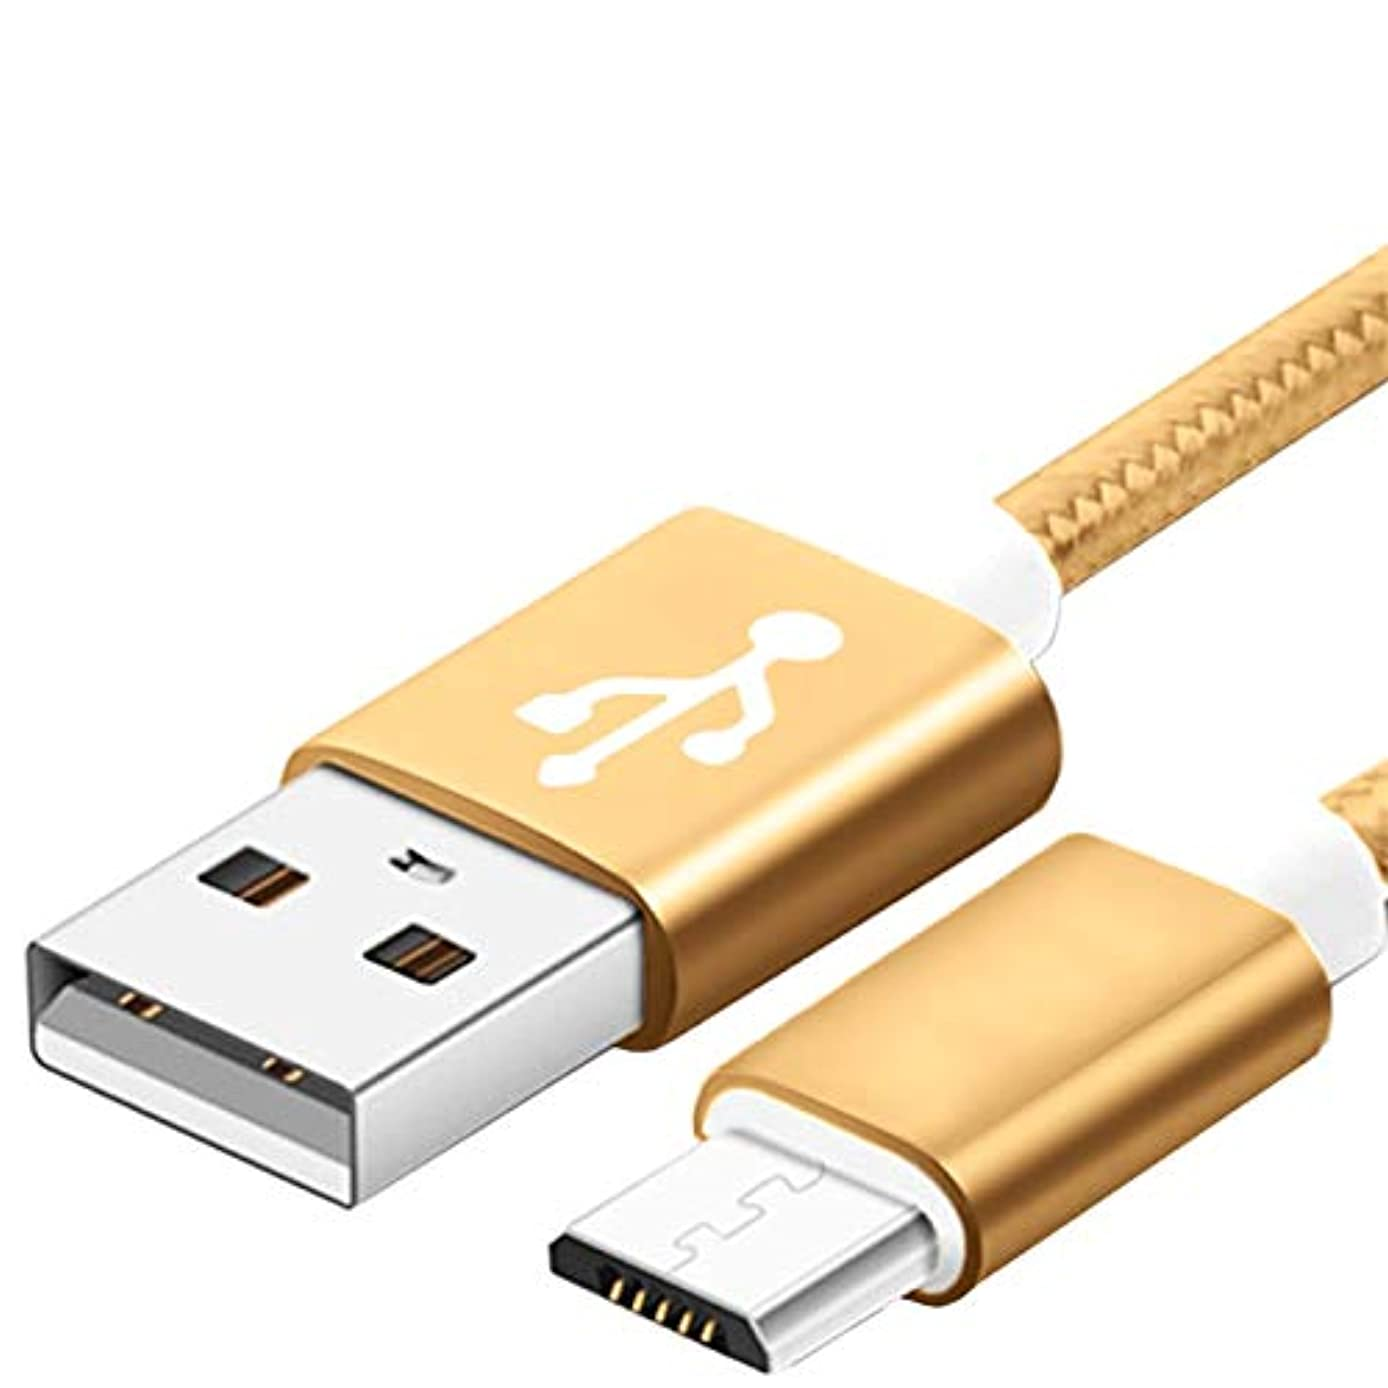 Micro USB Cable,5FT Long Nylon Braided Android Windows Fast Charging Charger Cord Durable USB2.0 Sync&Charging Powerline for Samsung Galaxy S7 S6 Sony LG Smartphones Gold